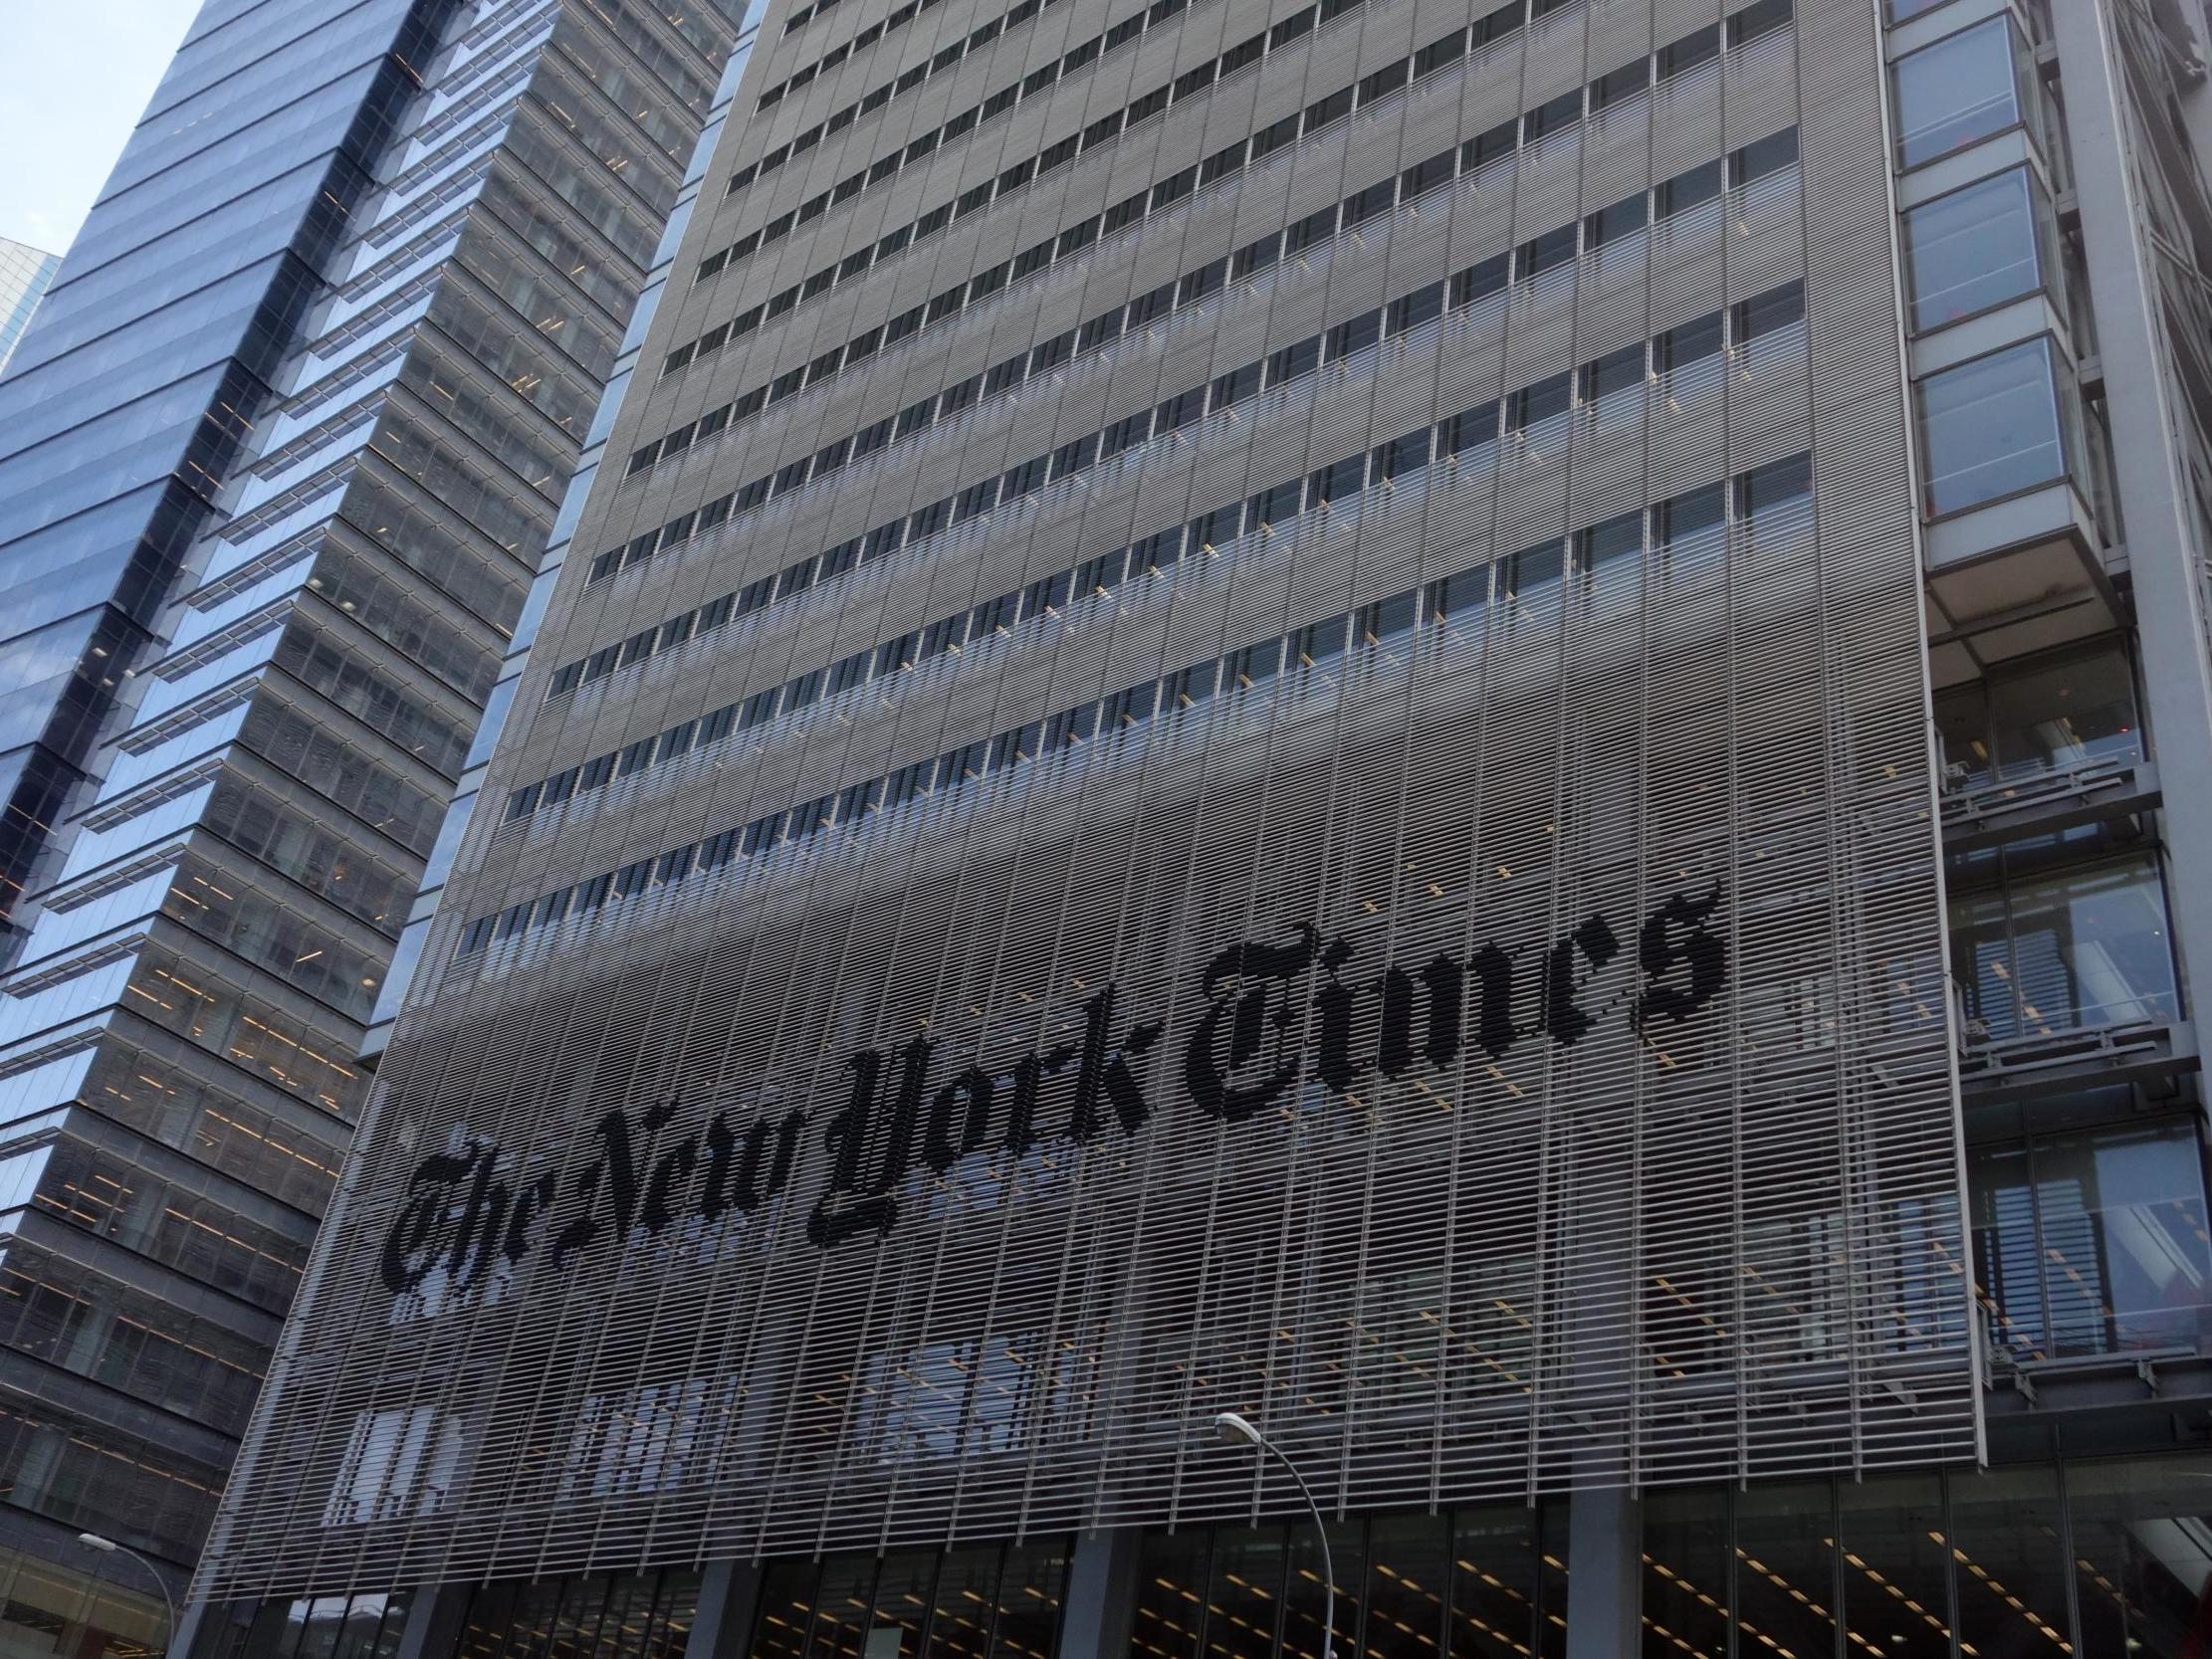 'Short, simple and damning': New York Times backs Trump impeachment …